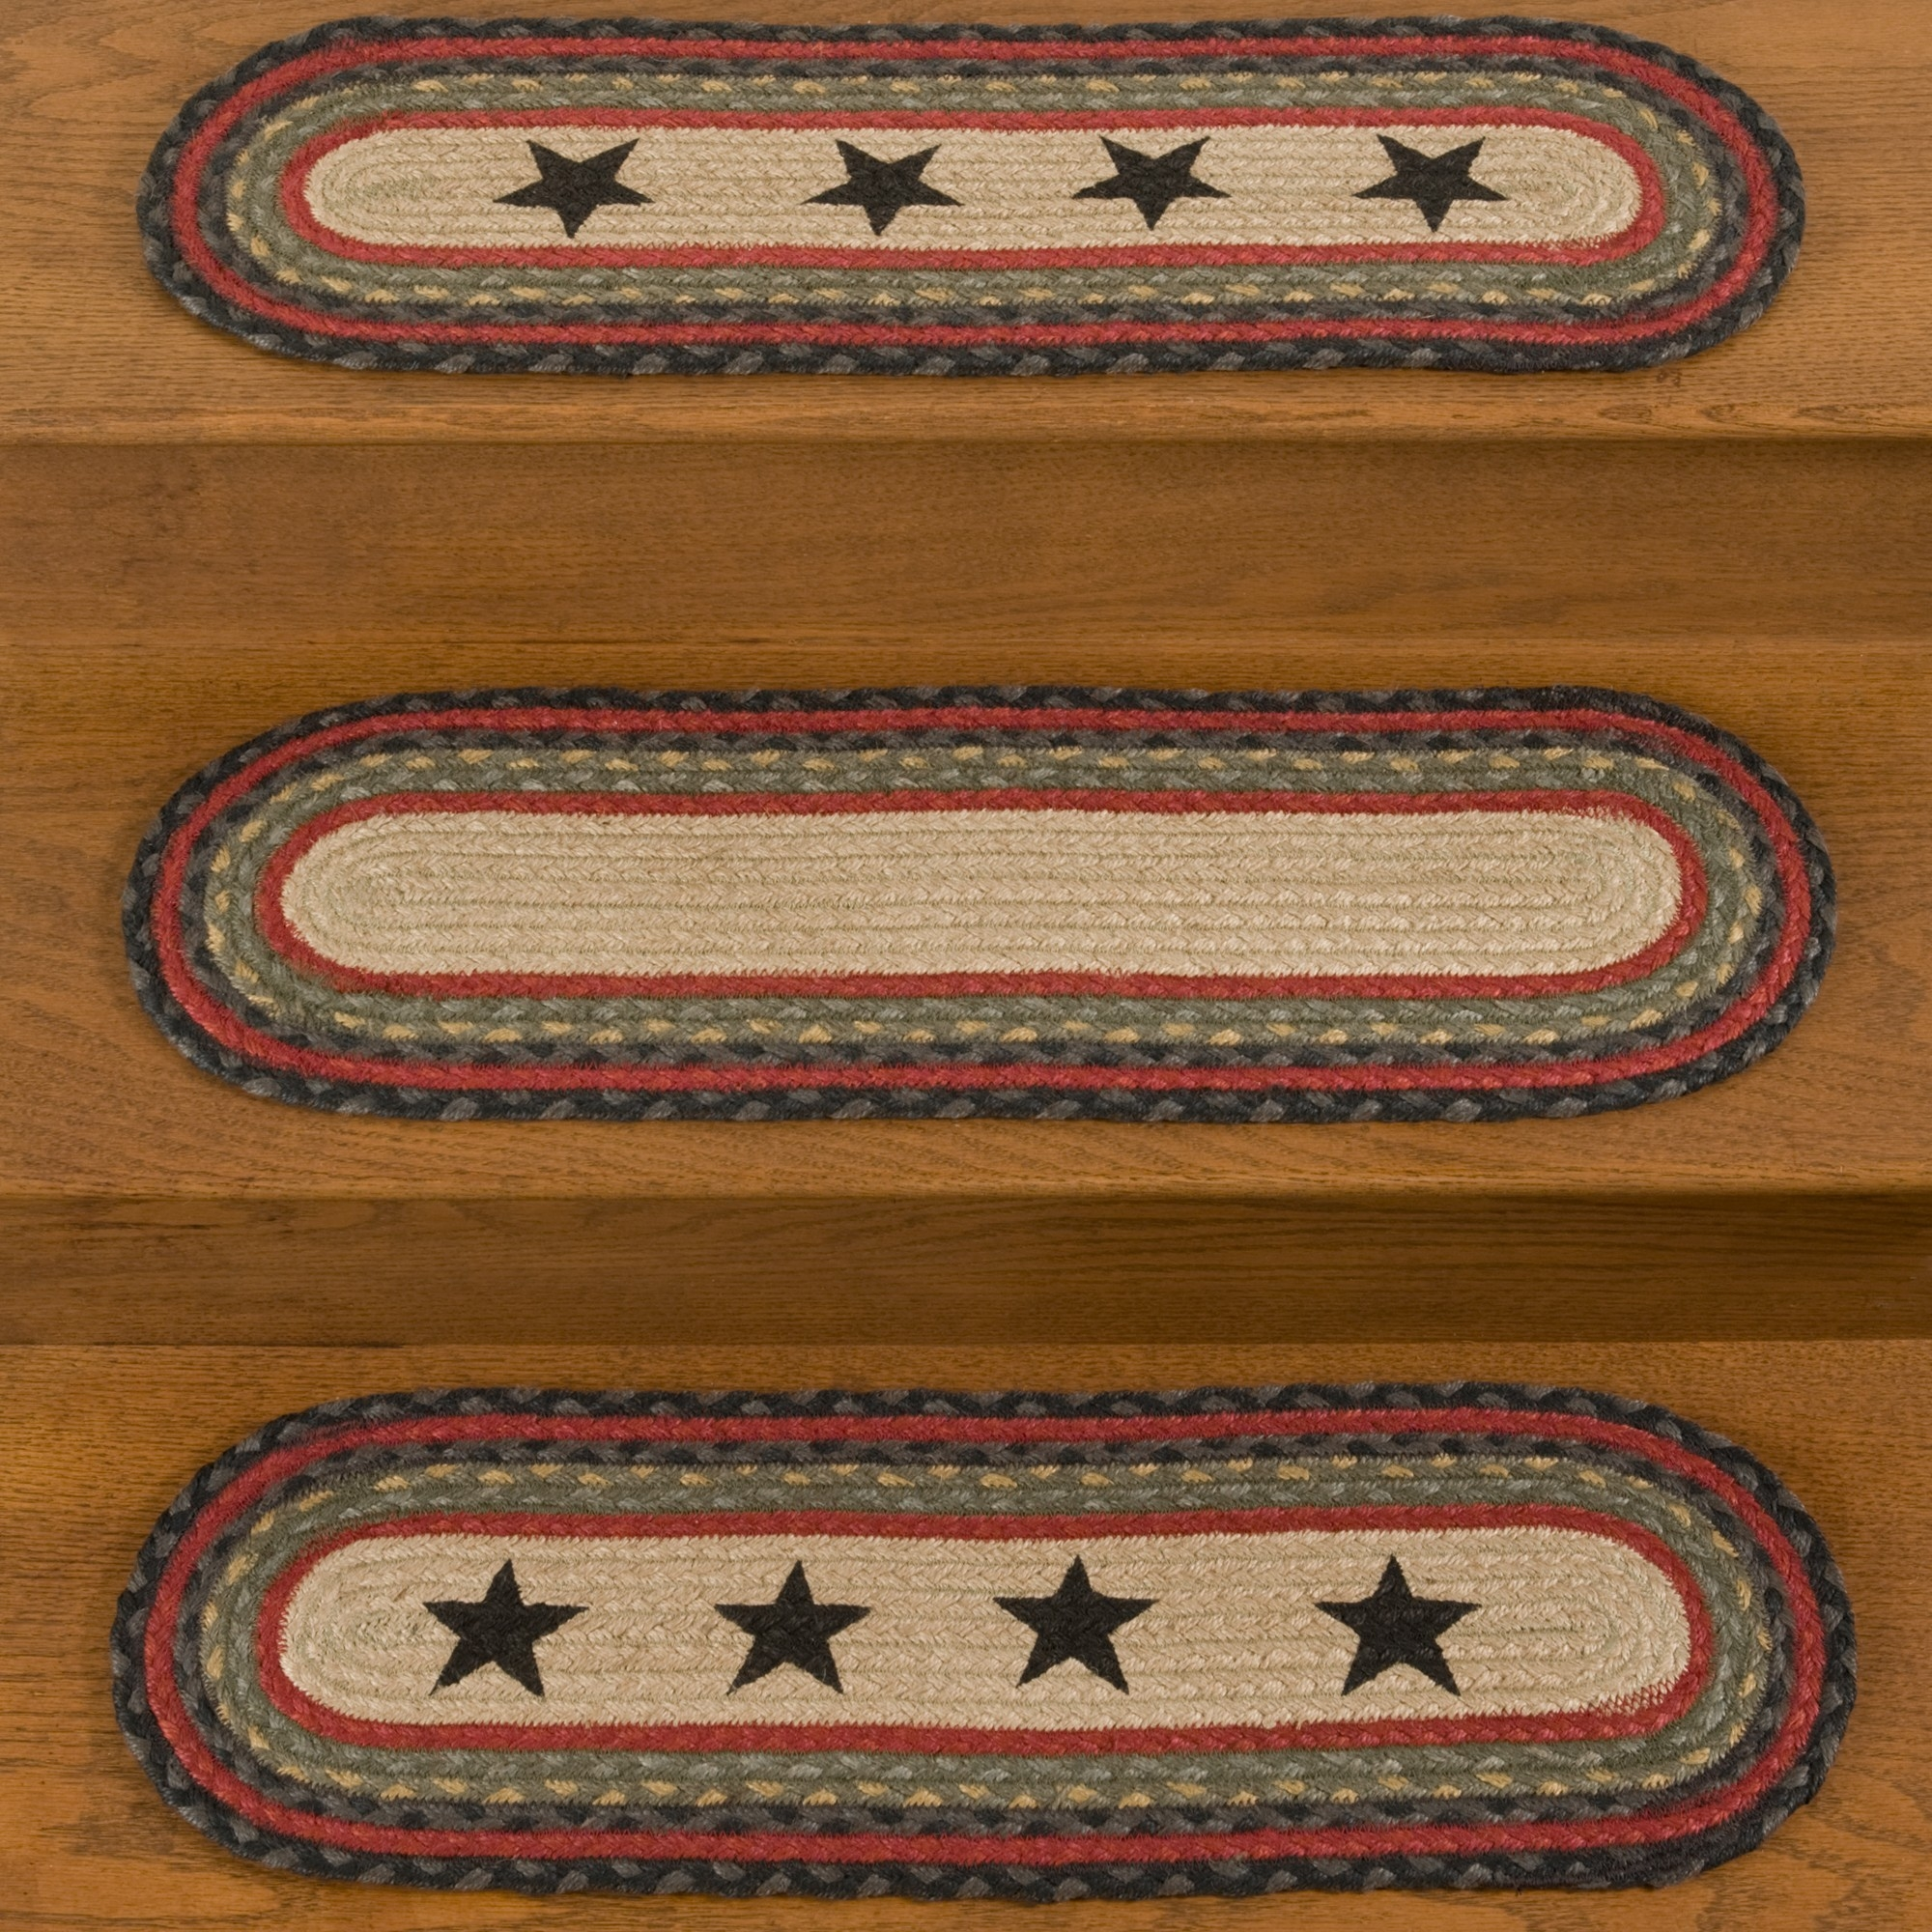 Braided Stair Tread Rugs Roselawnlutheran Inside Braided Stair Tread Rugs (Image 2 of 15)